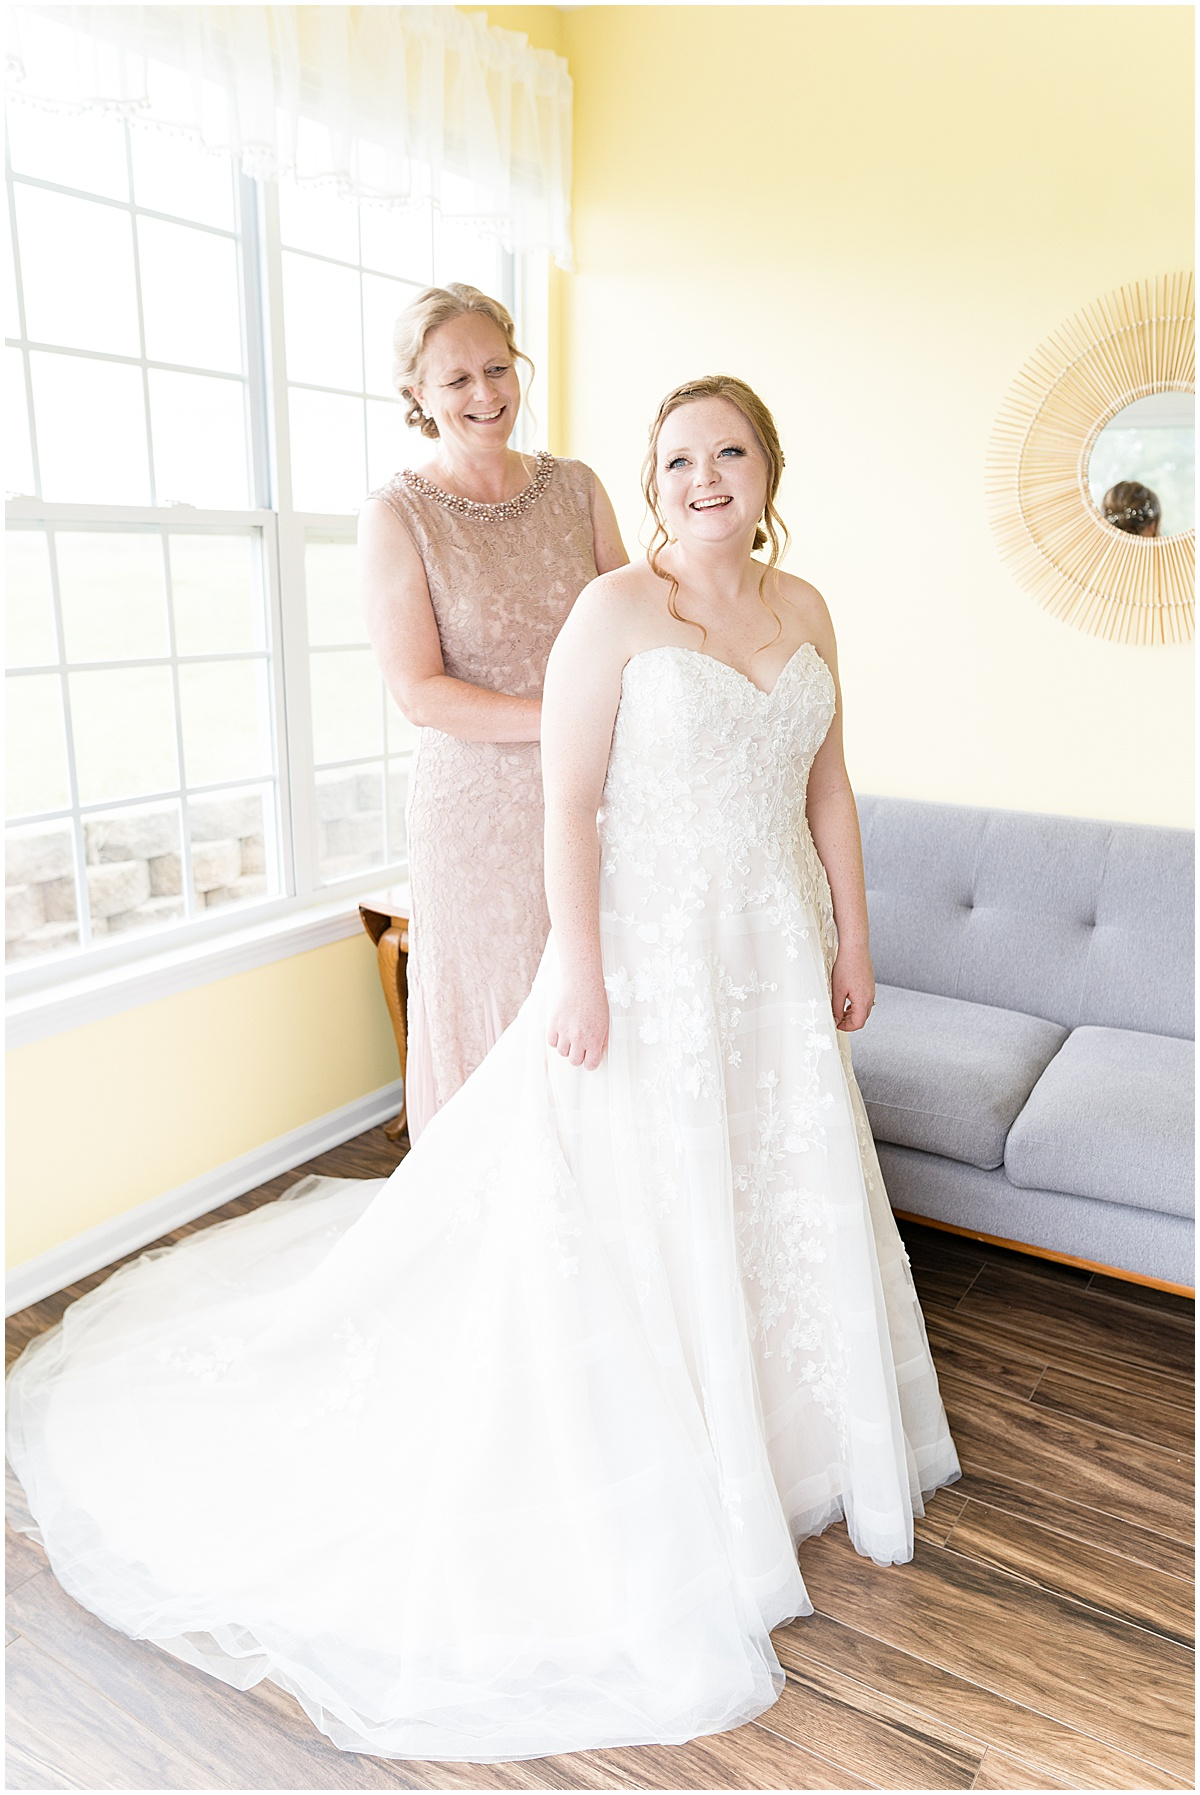 Bride getting ready for County Line Orchard wedding in Hobart, Indiana with her mom's help